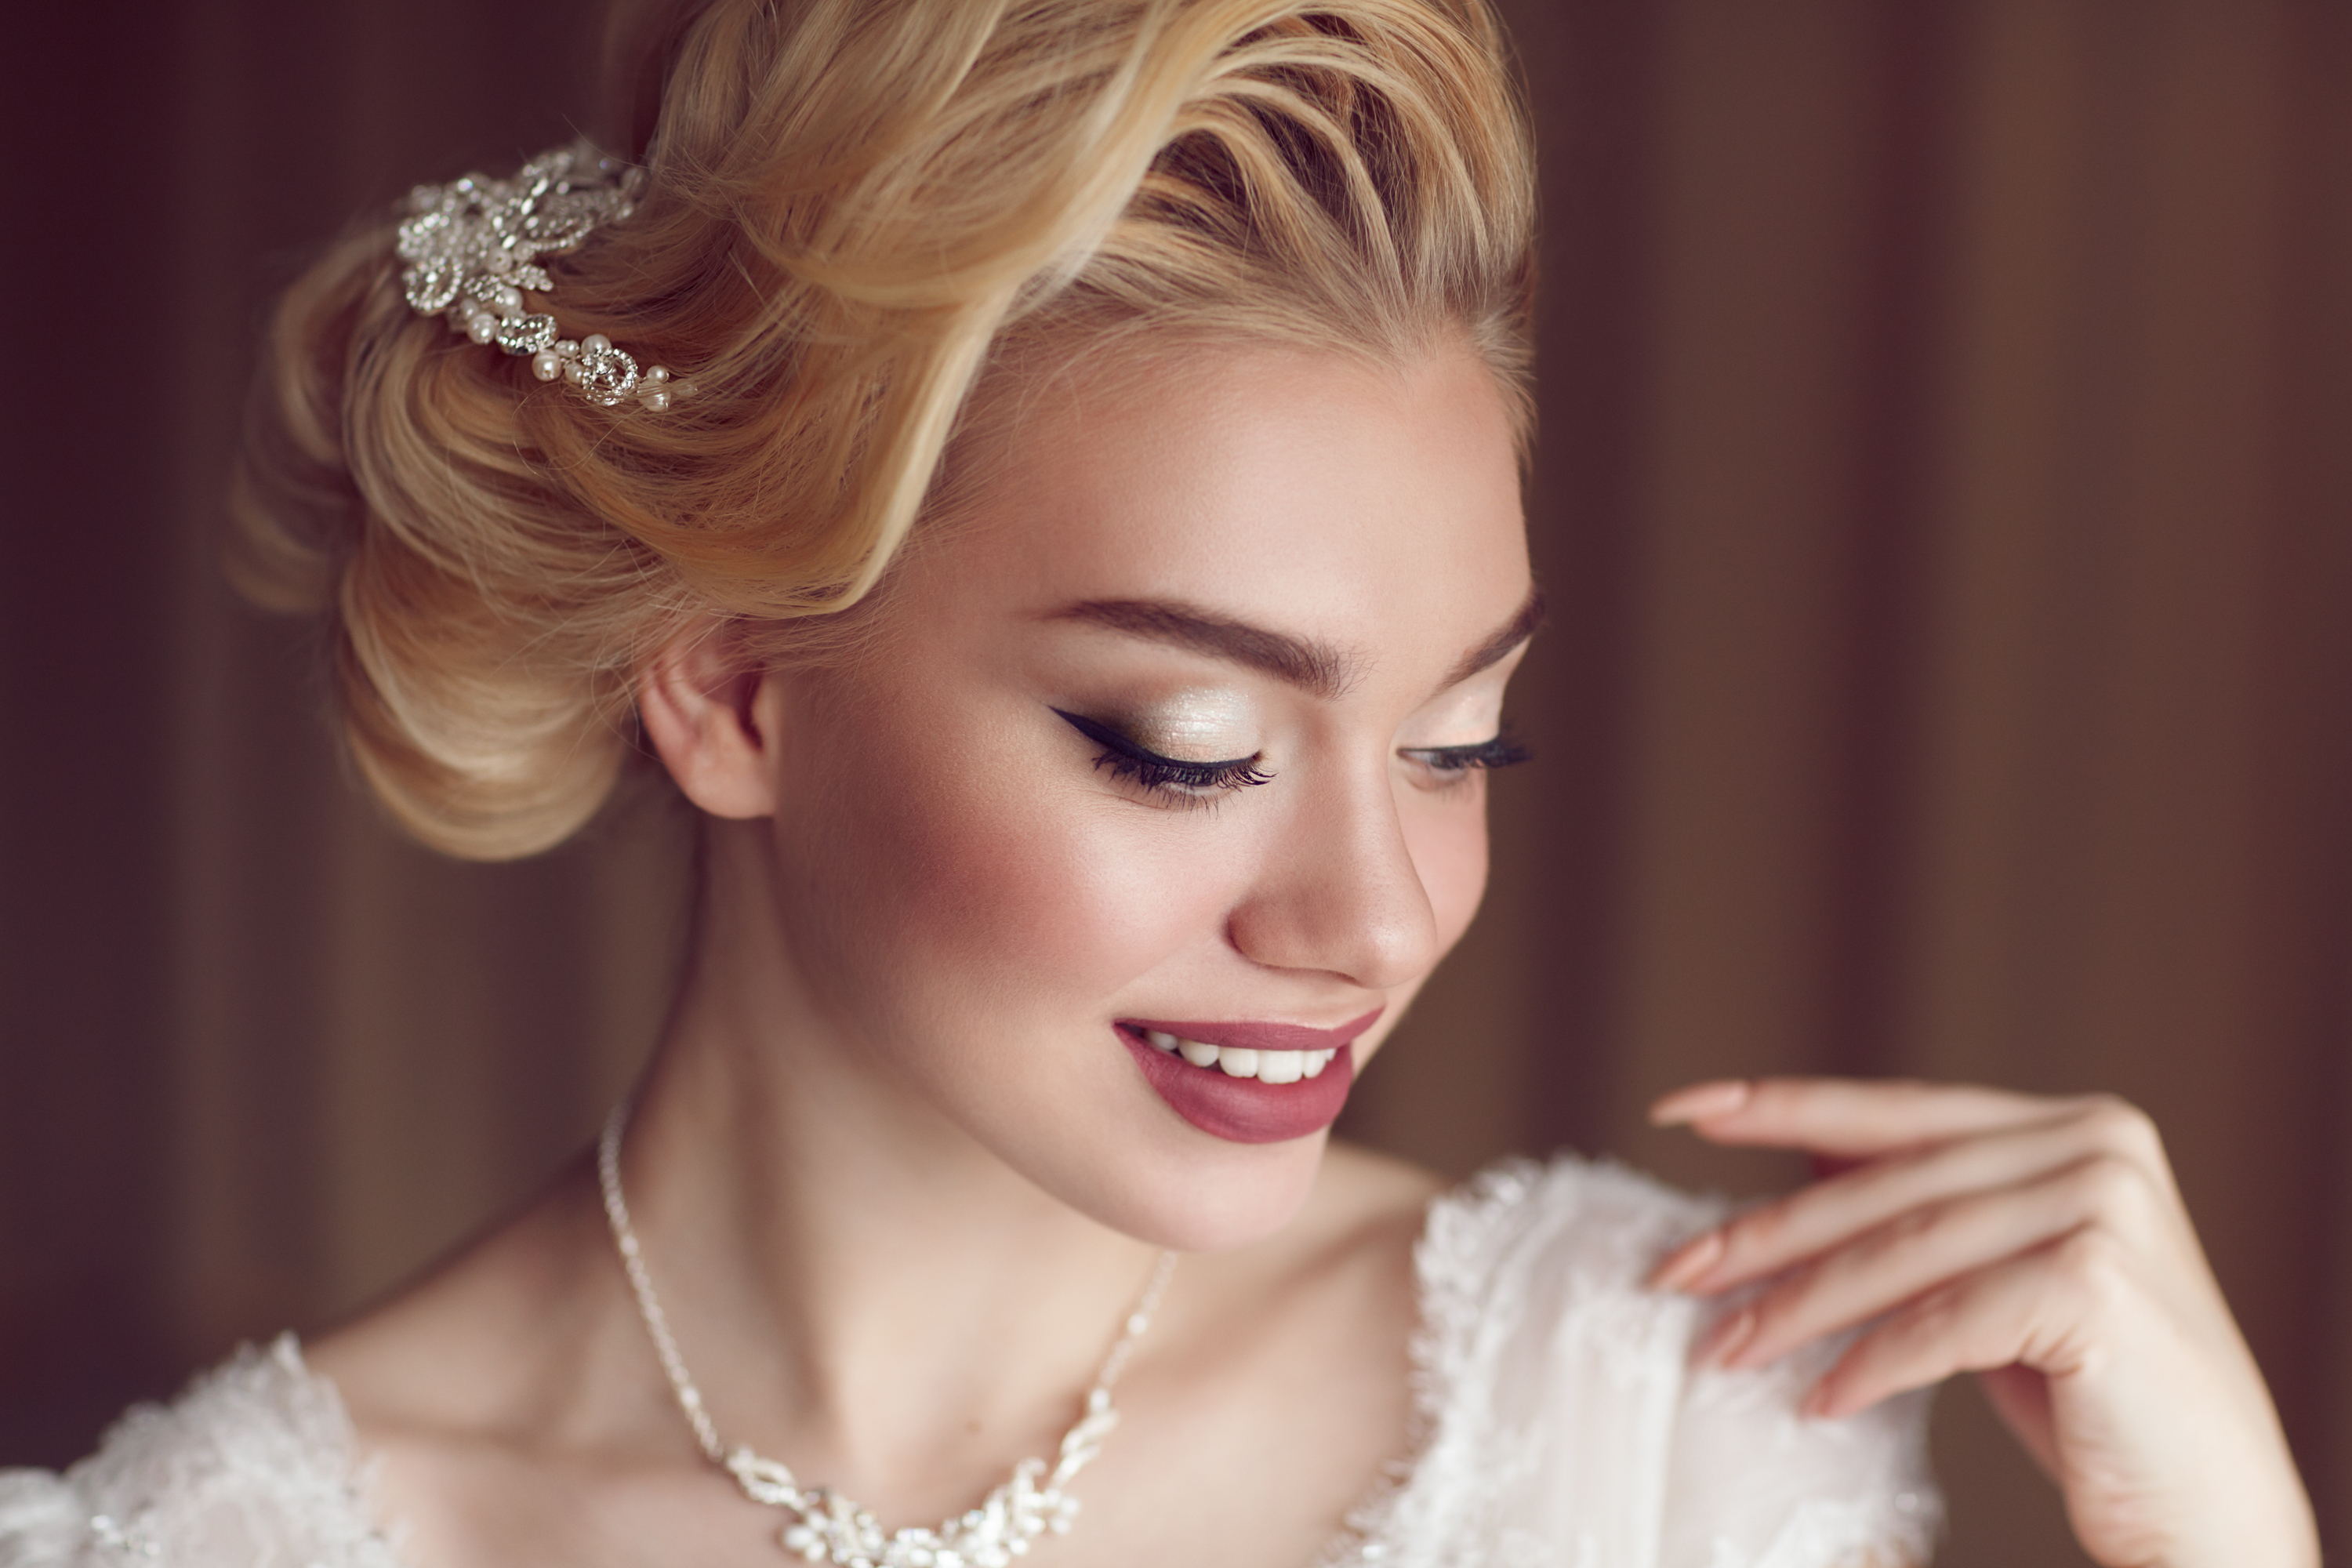 If you're planning a winter wedding, make sure your wedding makeup matches the time of year. These winter wedding makeup tips will have you looking amazing.